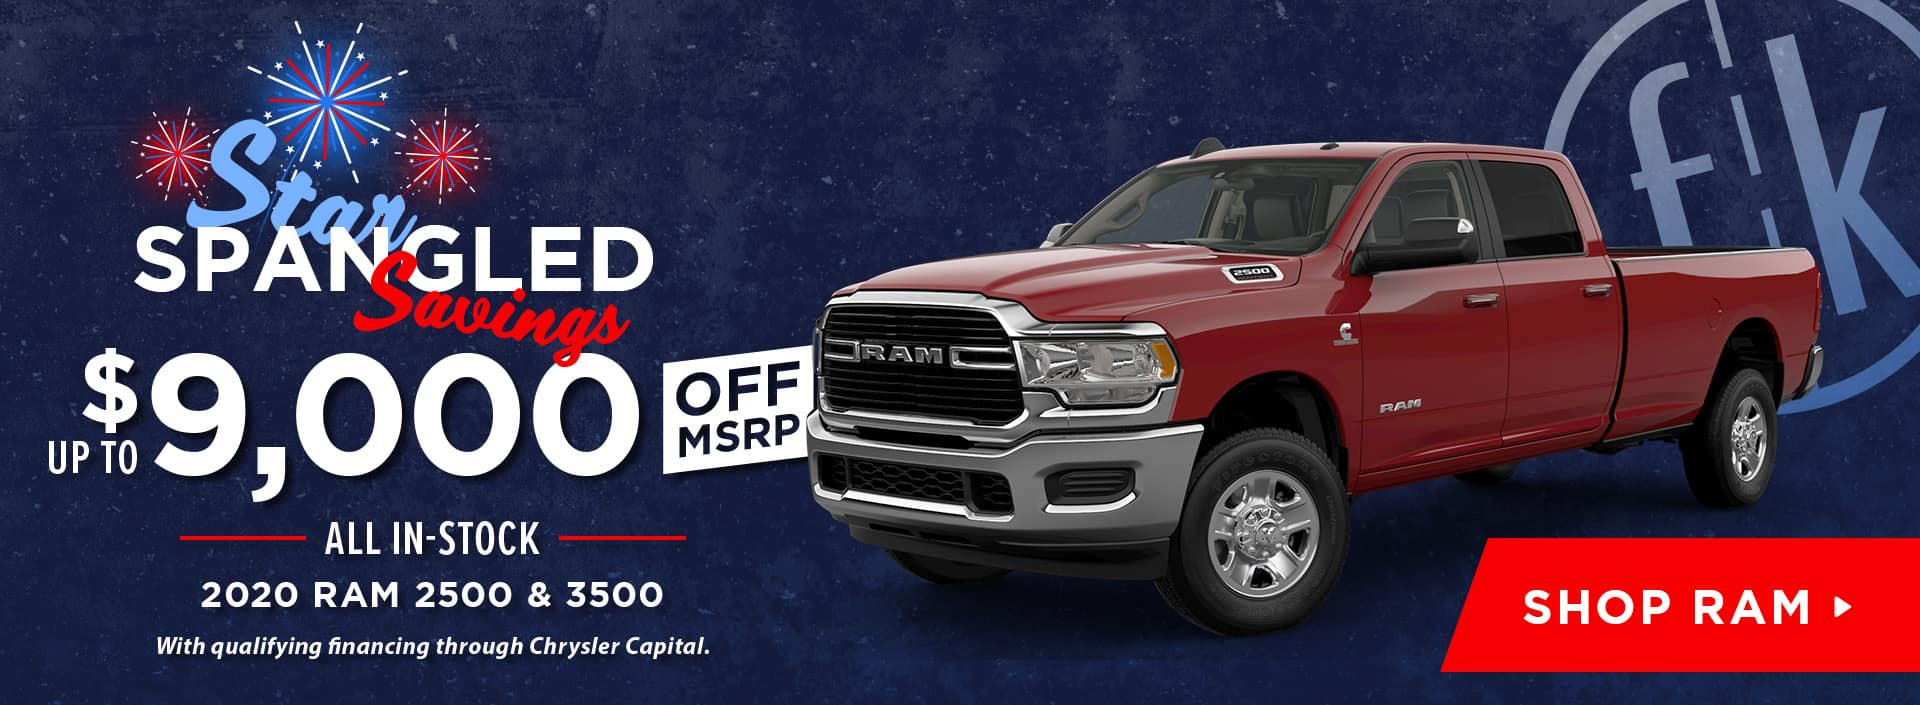 Up To $9,000 Off All In-Stock 2020 RAM 2500 & 3500